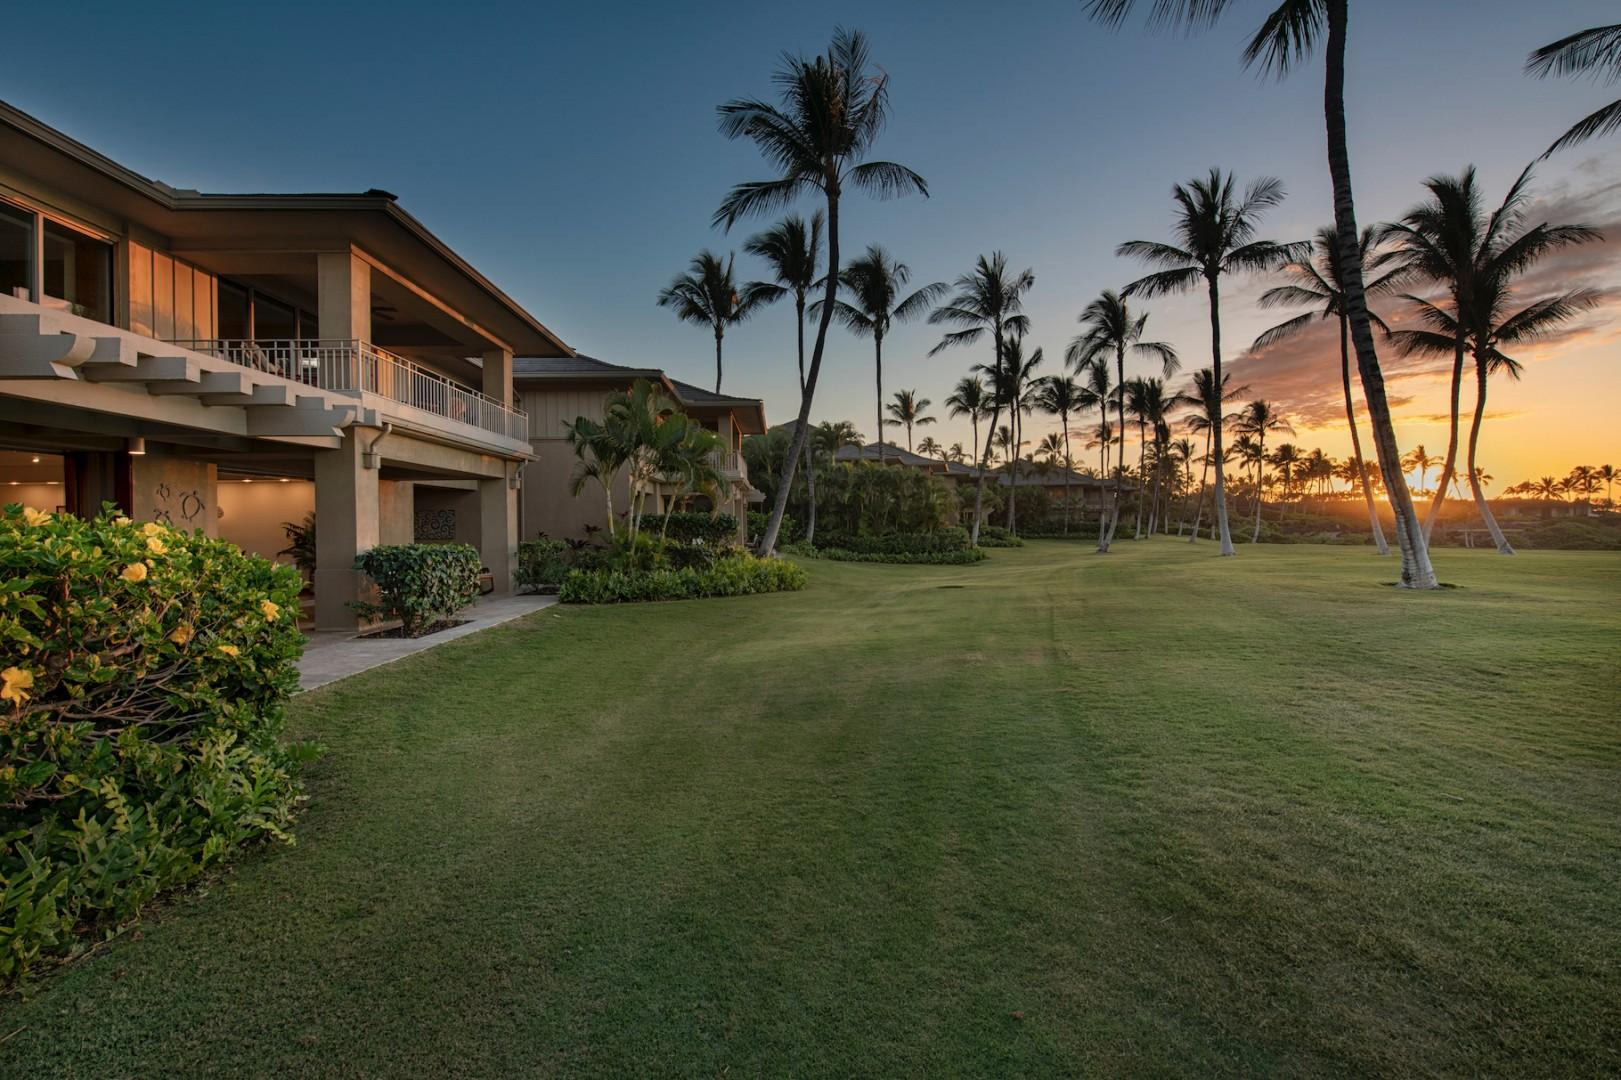 """The famous """"front row"""" of the golf villas at sunset, with nothing but sprawling green between you and the ocean."""